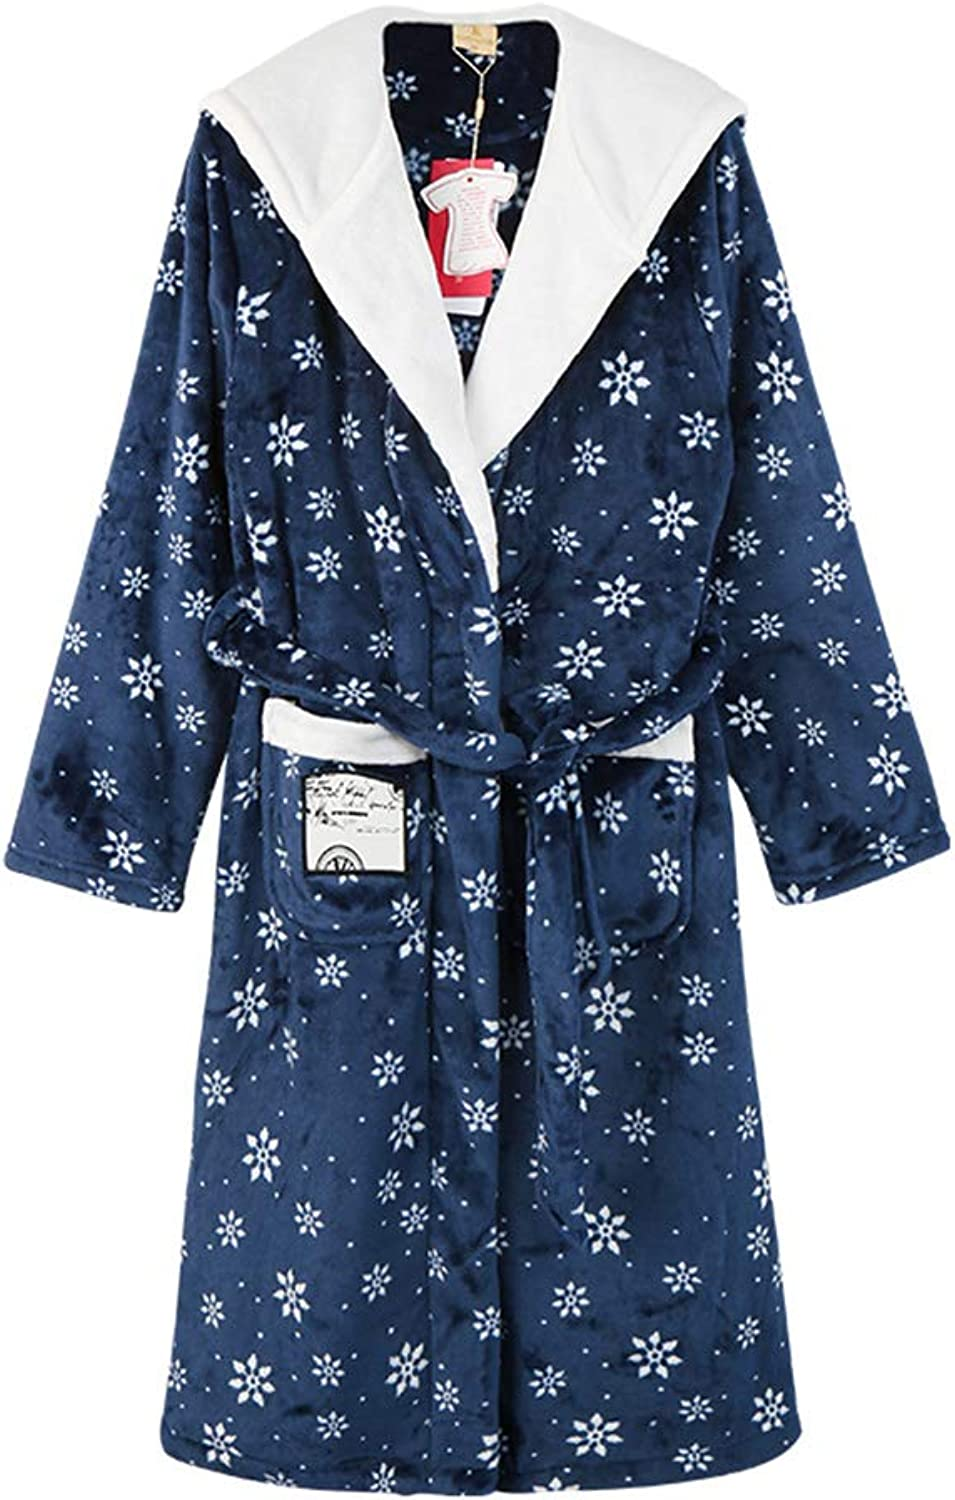 Pajama Sets Pajamas Coral Velvet Female Korean Version of The Cartoon Nightgown Sweet Hooded Flannel Home Service Bathrobe Pajama Sets (color   bluee, Size   XL)